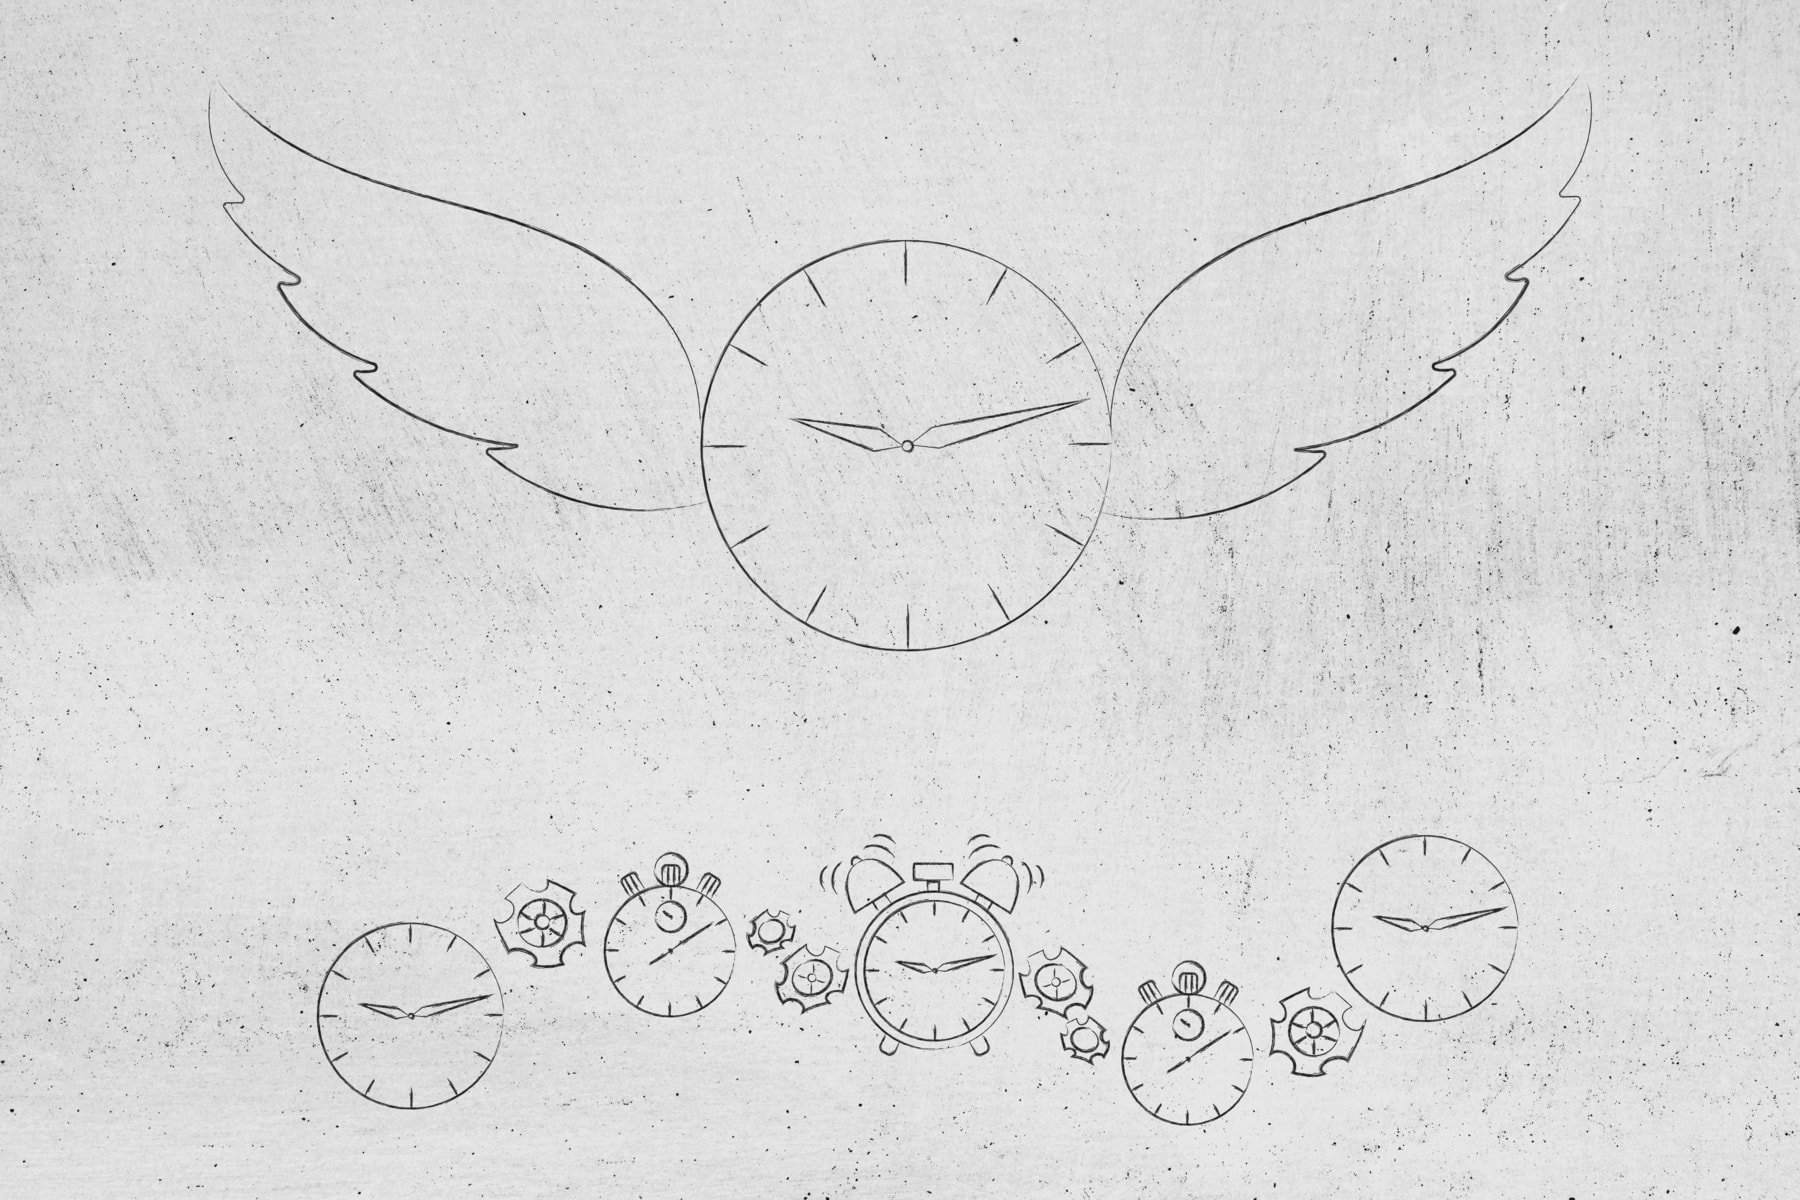 time flies conceptual illustration: clock with wings taking flight and group of others below it